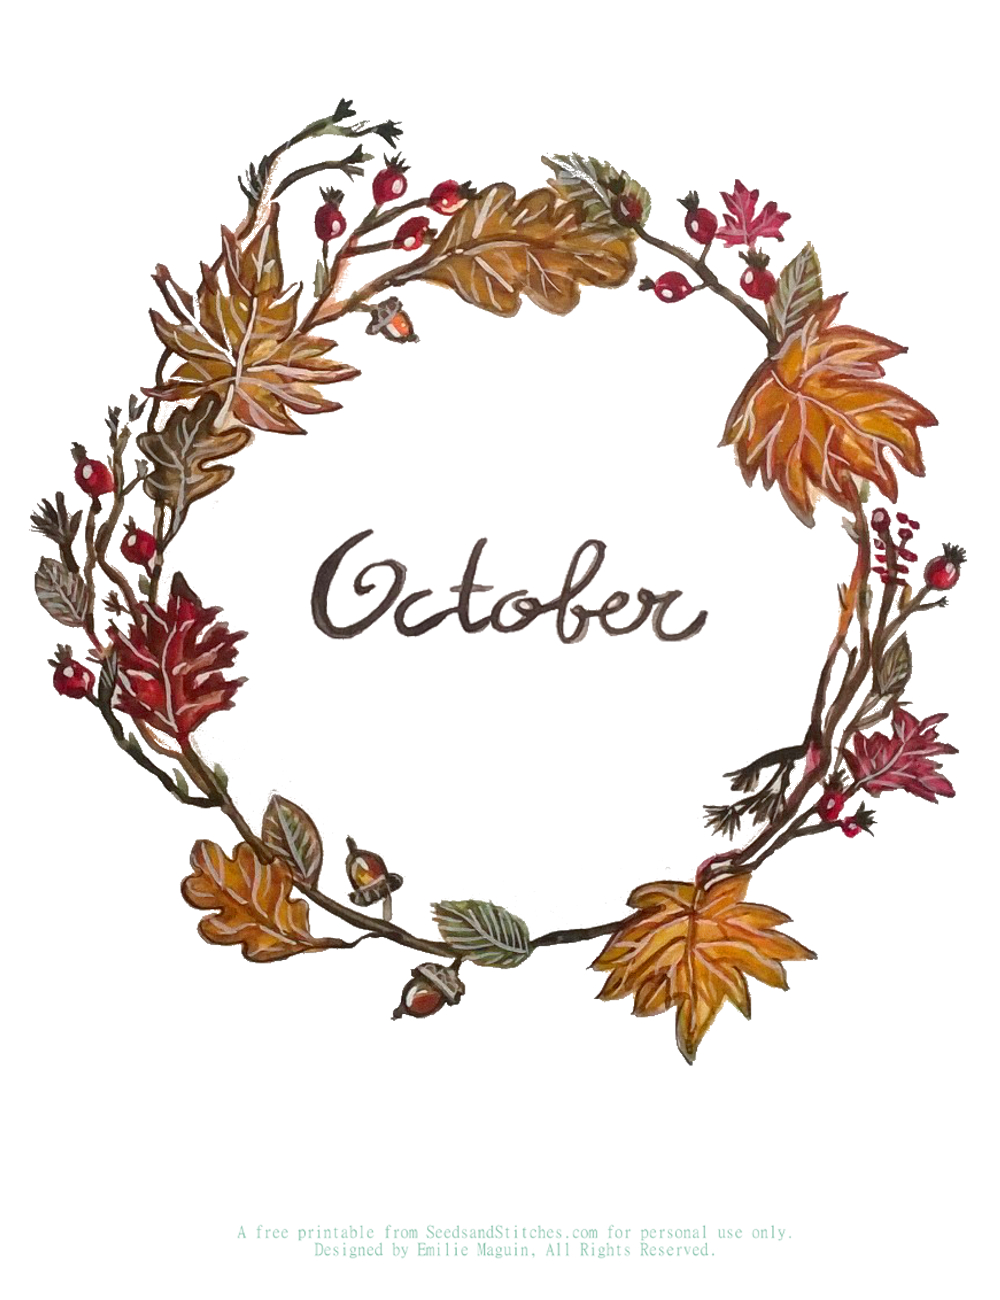 October. By Emilie Maguin | Hannah Bullivant